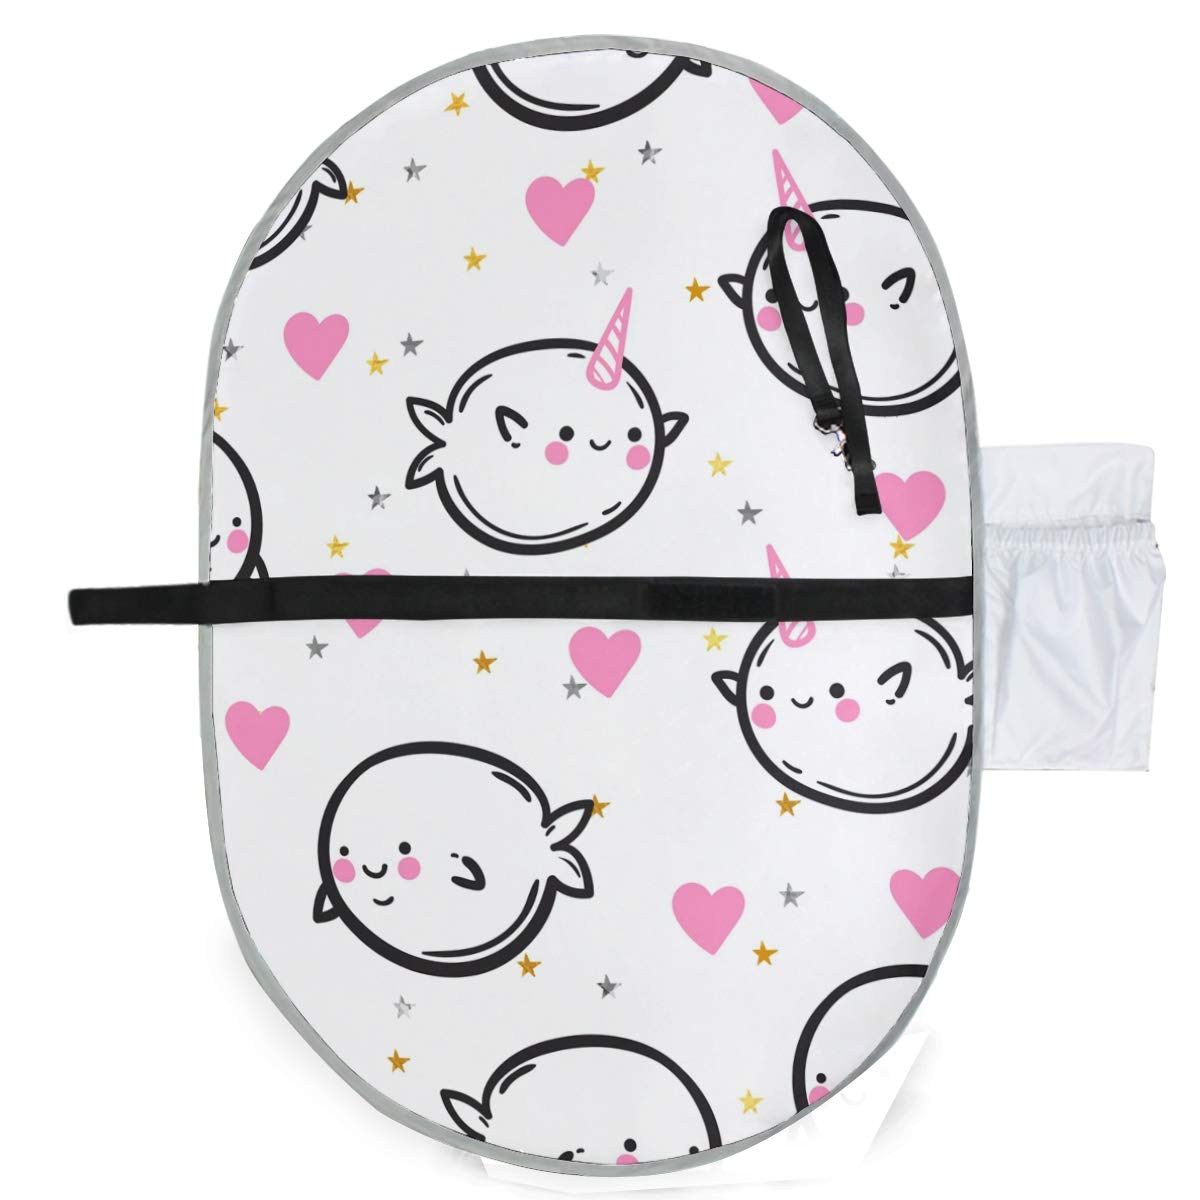 Waterproof Washable Baby Diaper Changing Pad Mat Funny Whales Hearts Portable and Foldable Infant Large Nappy Mat 27x20 inch